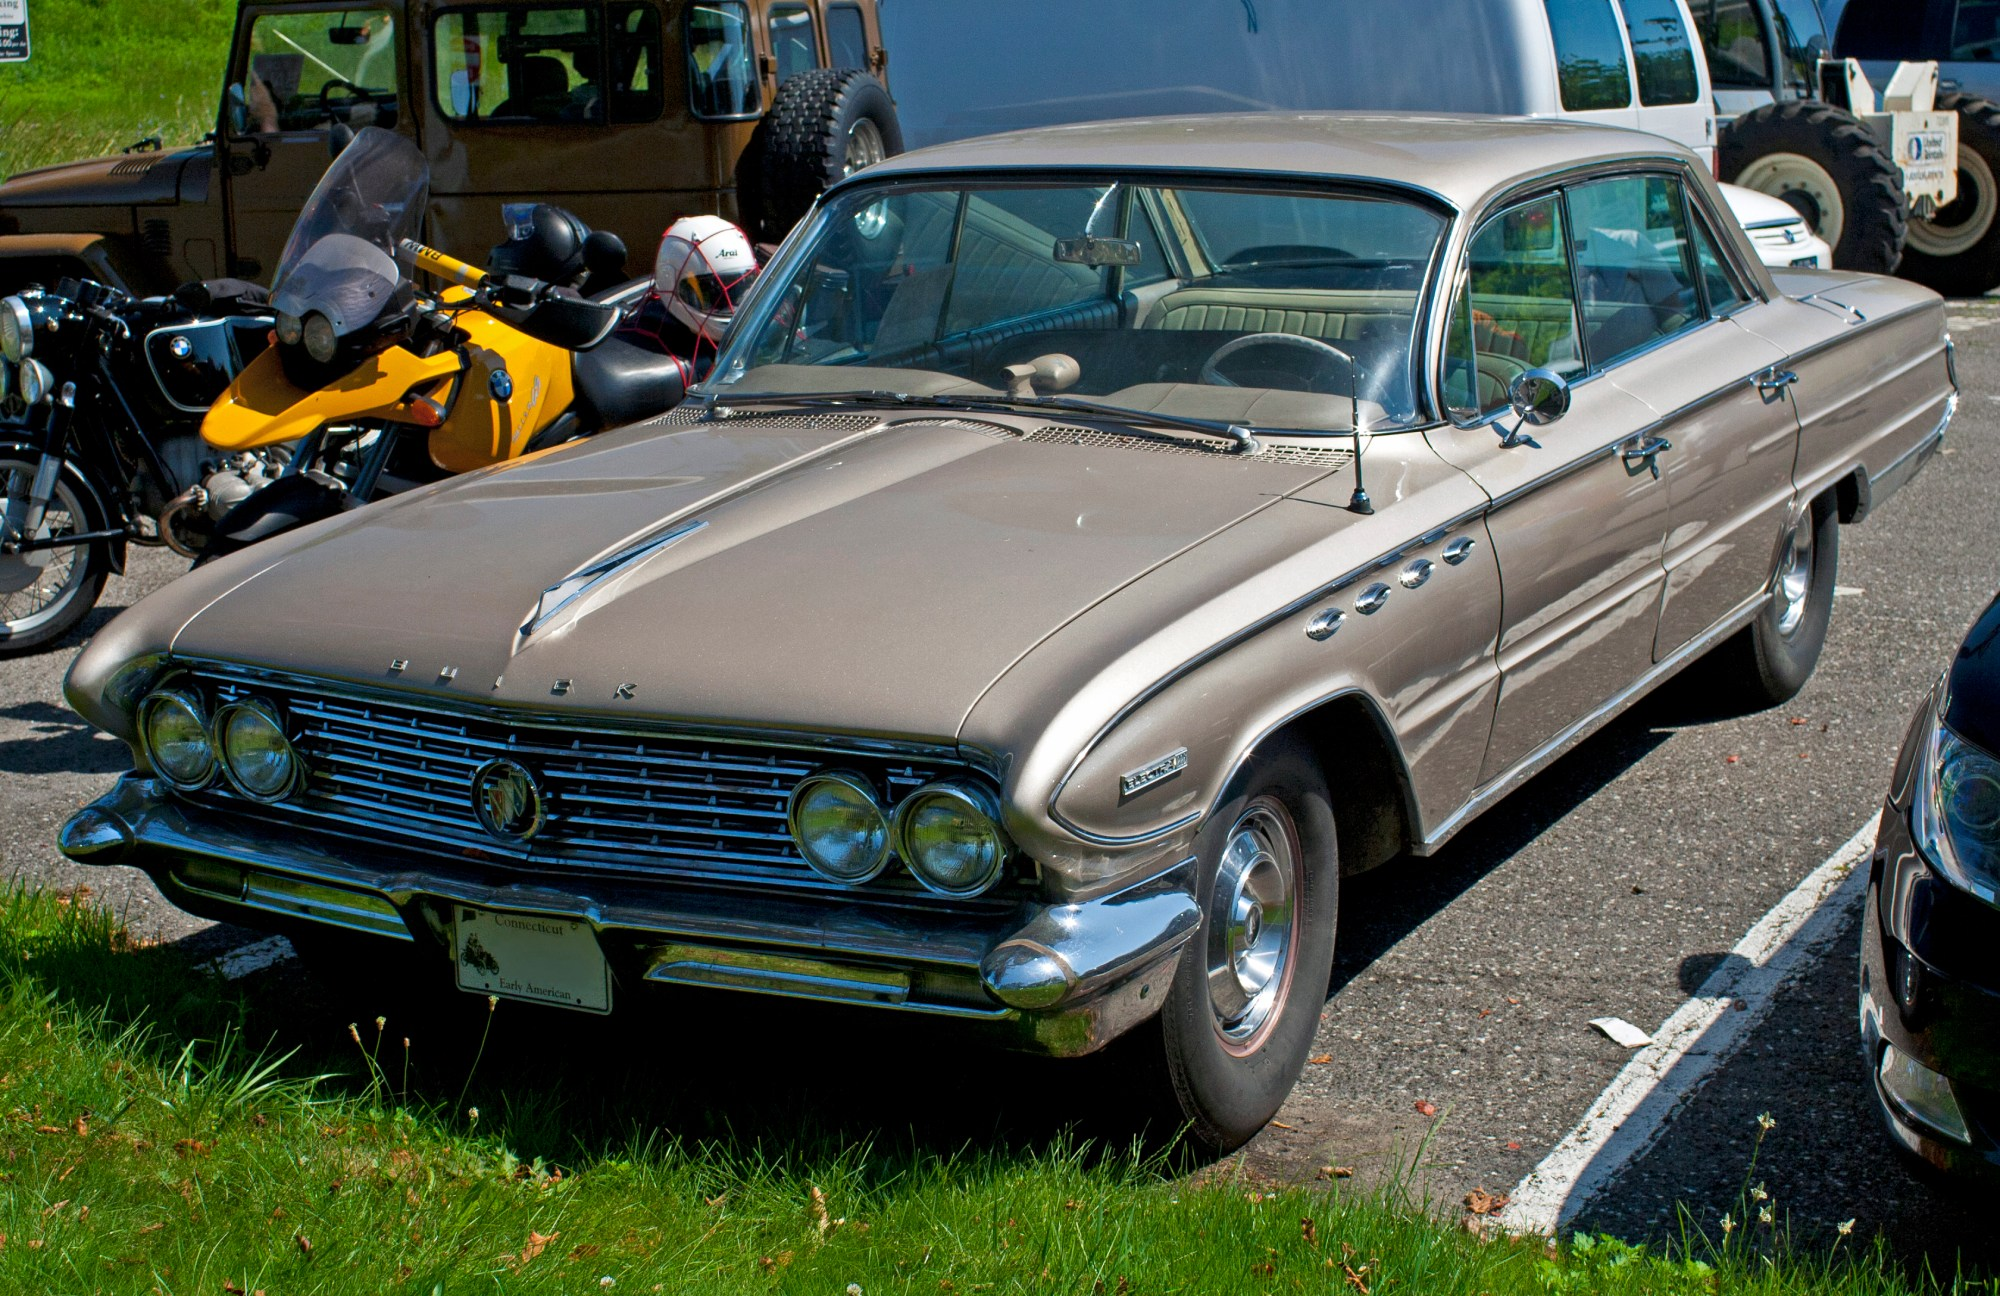 hight resolution of file 1961 buick electra 225 g wich jpg